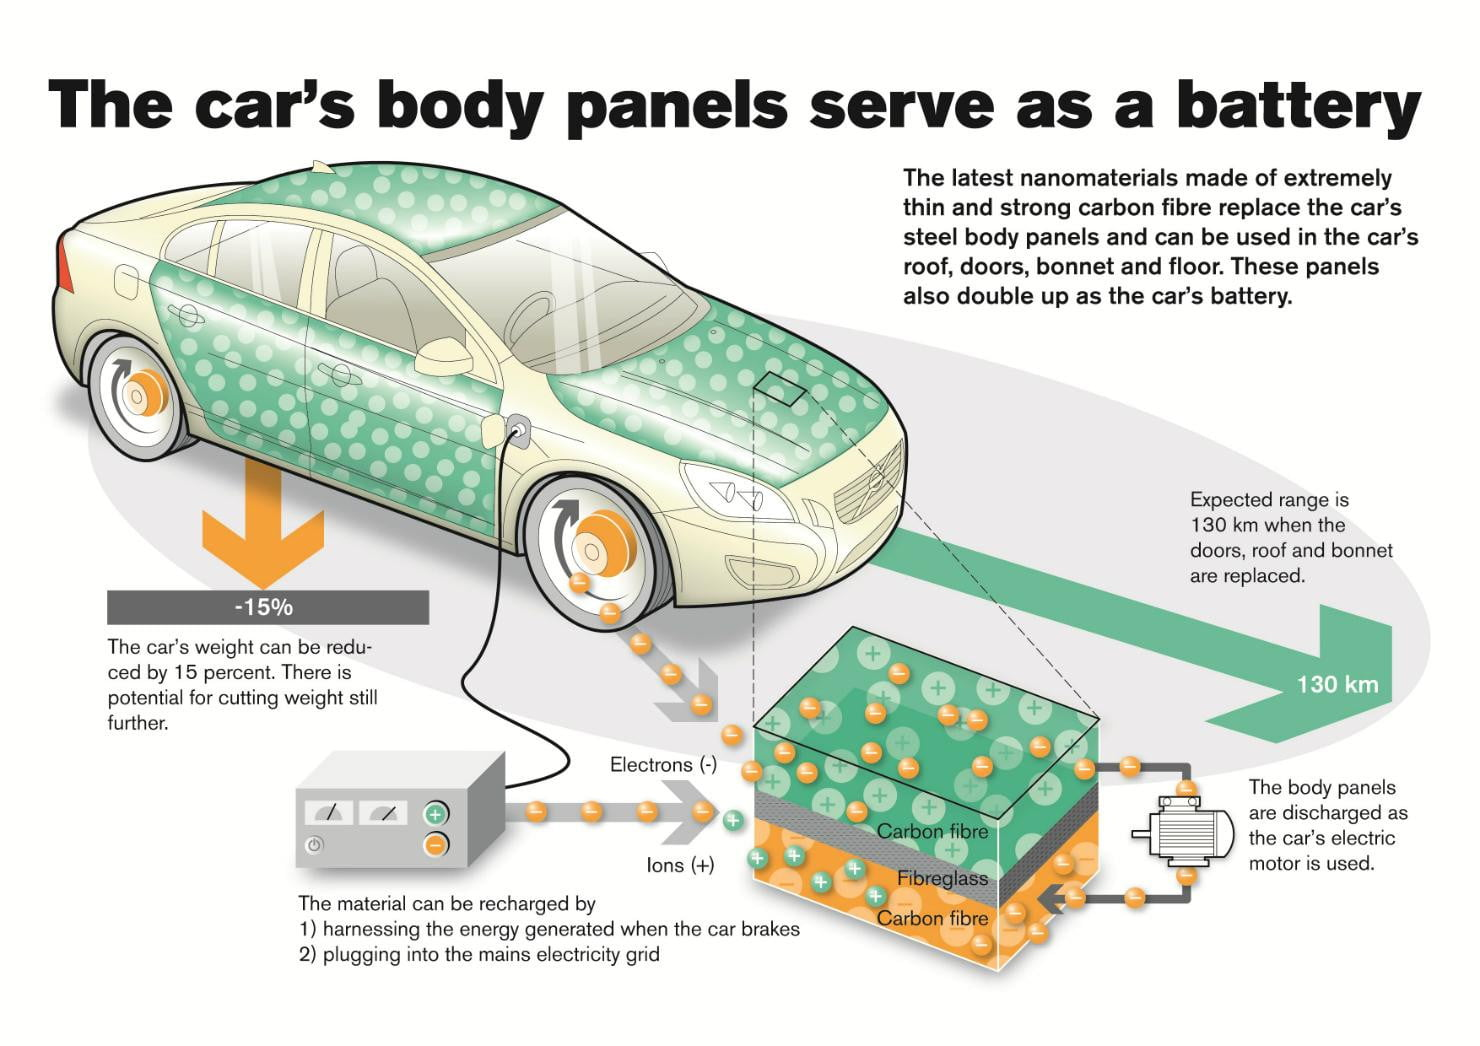 On Volvo's experimental S80, the panels replace the 12 volt electrical system